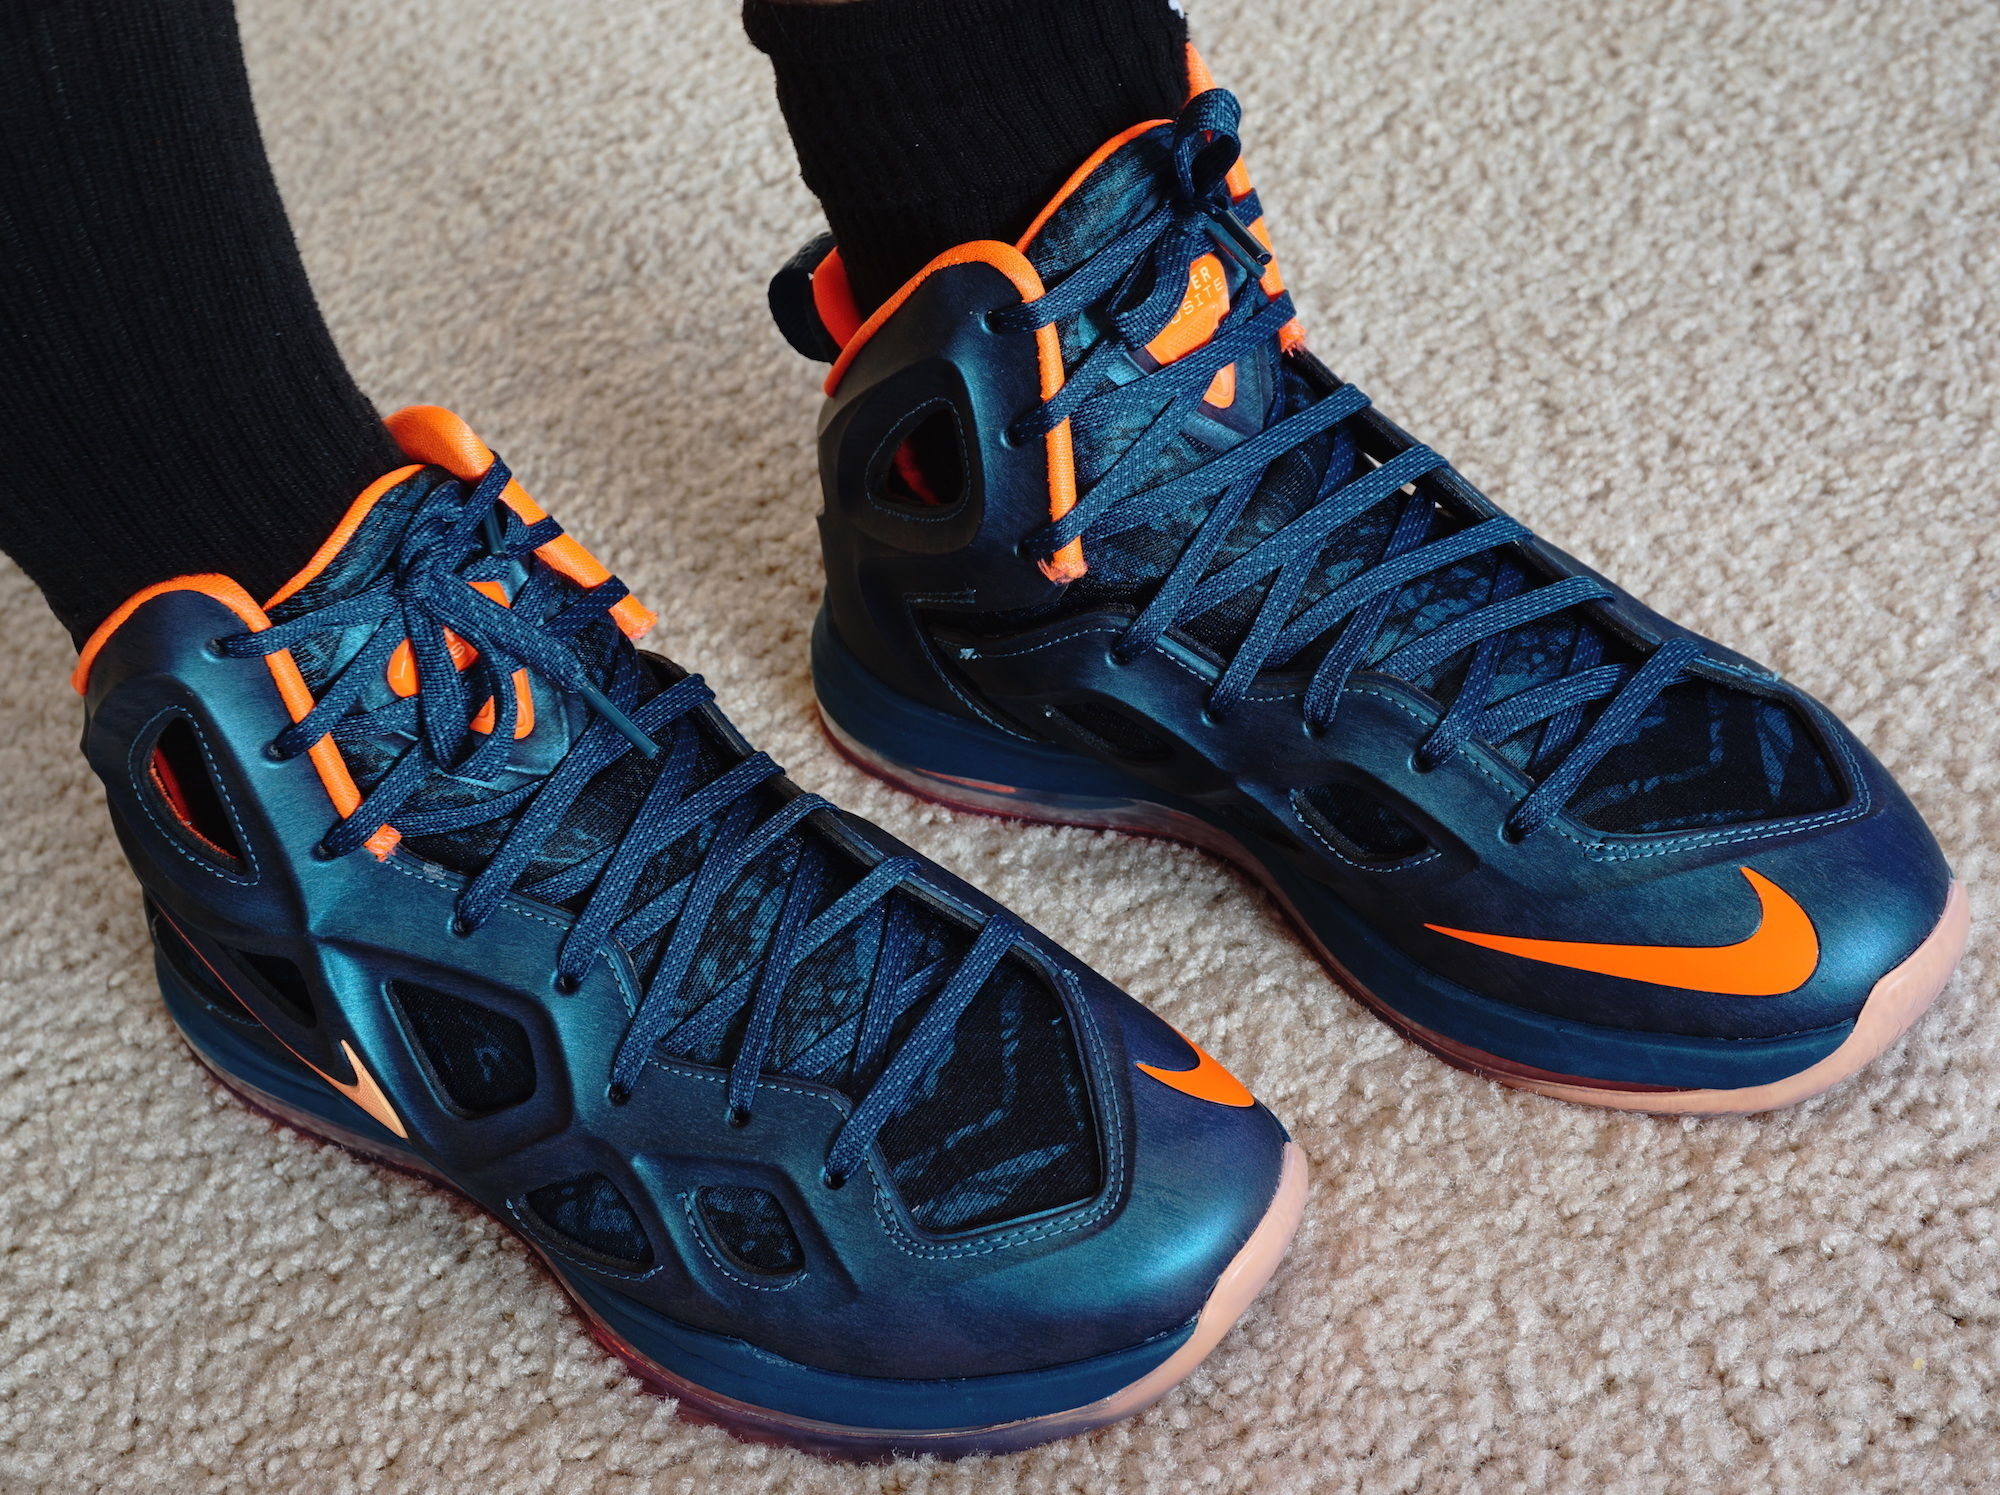 0_1467637663340_Nike Air Zoom Hyperposite.JPG